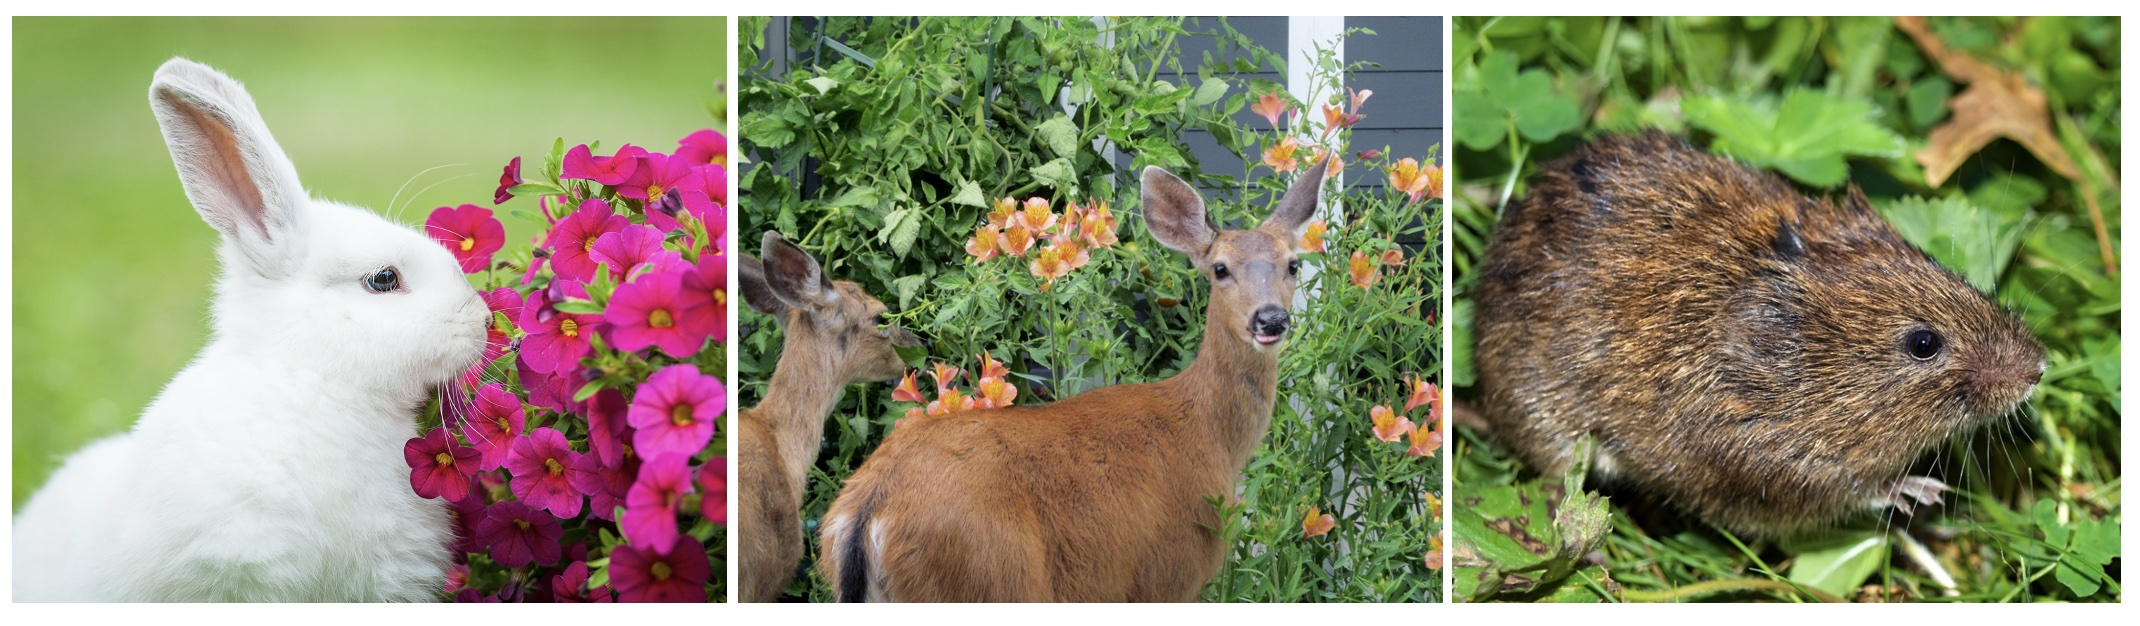 Protect your plants from rabbits deer and voles with Plantskydd